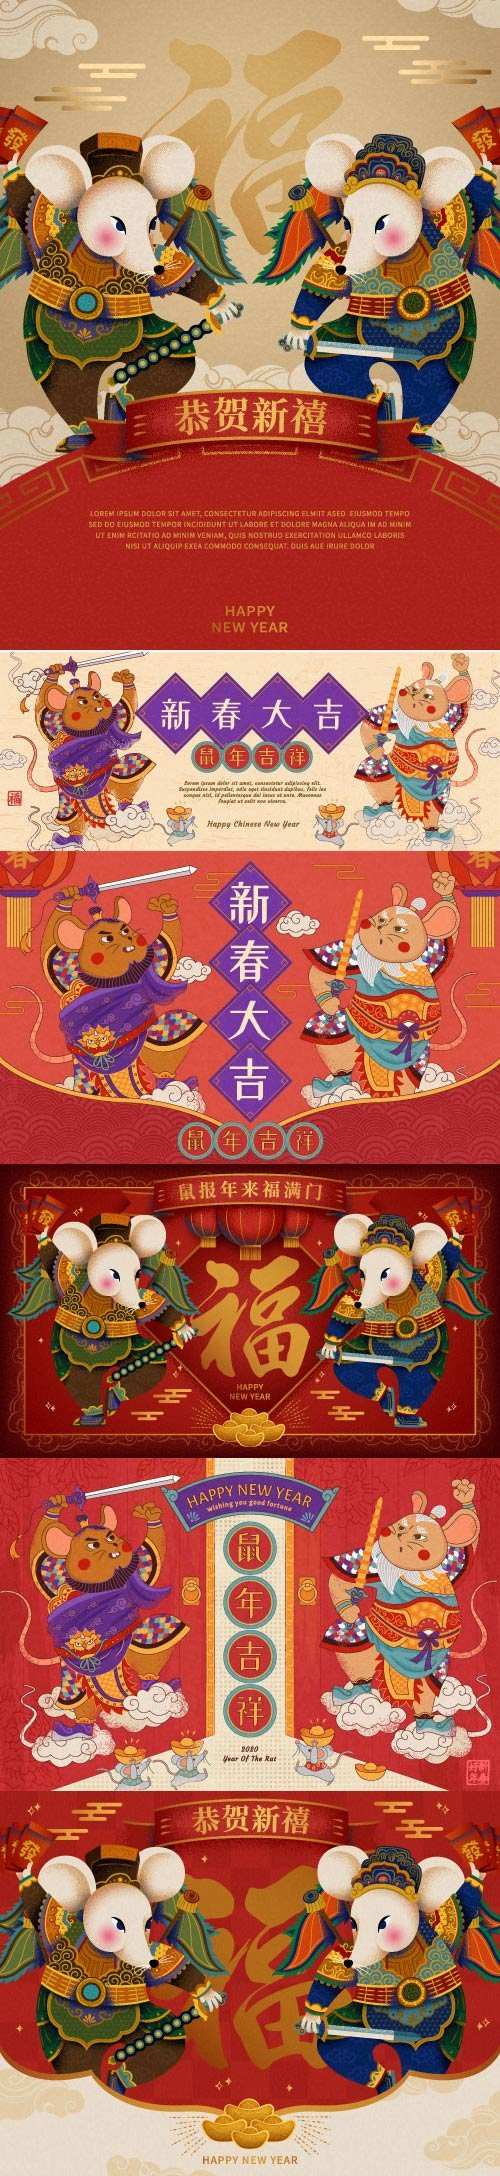 Cute mice door gods for new year